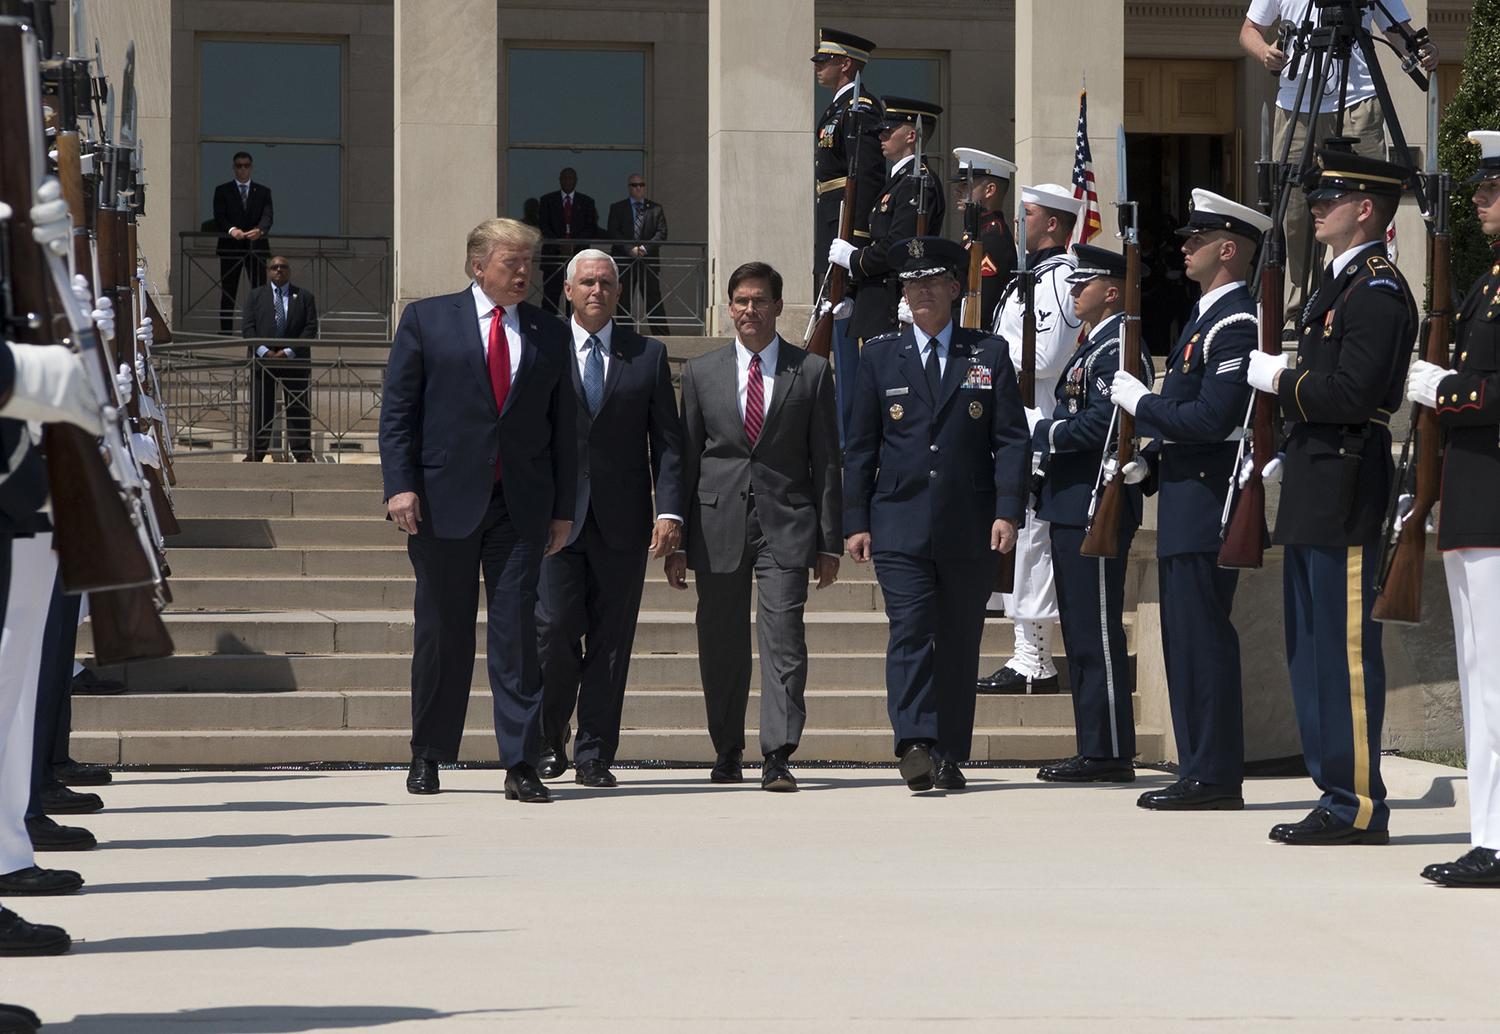 President Donald Trump, Vice President Michael Pence, Secretary of Defense Dr. Mark T. Esper and Air Force Gen. Paul J. Selva, vice chairman of the Joint Chiefs of Staff, participate in a full honors welcome ceremony for Secretary Esper at the Pentagon on July 25, 2019. (Army Sgt. Amber I. Smith/DoD)